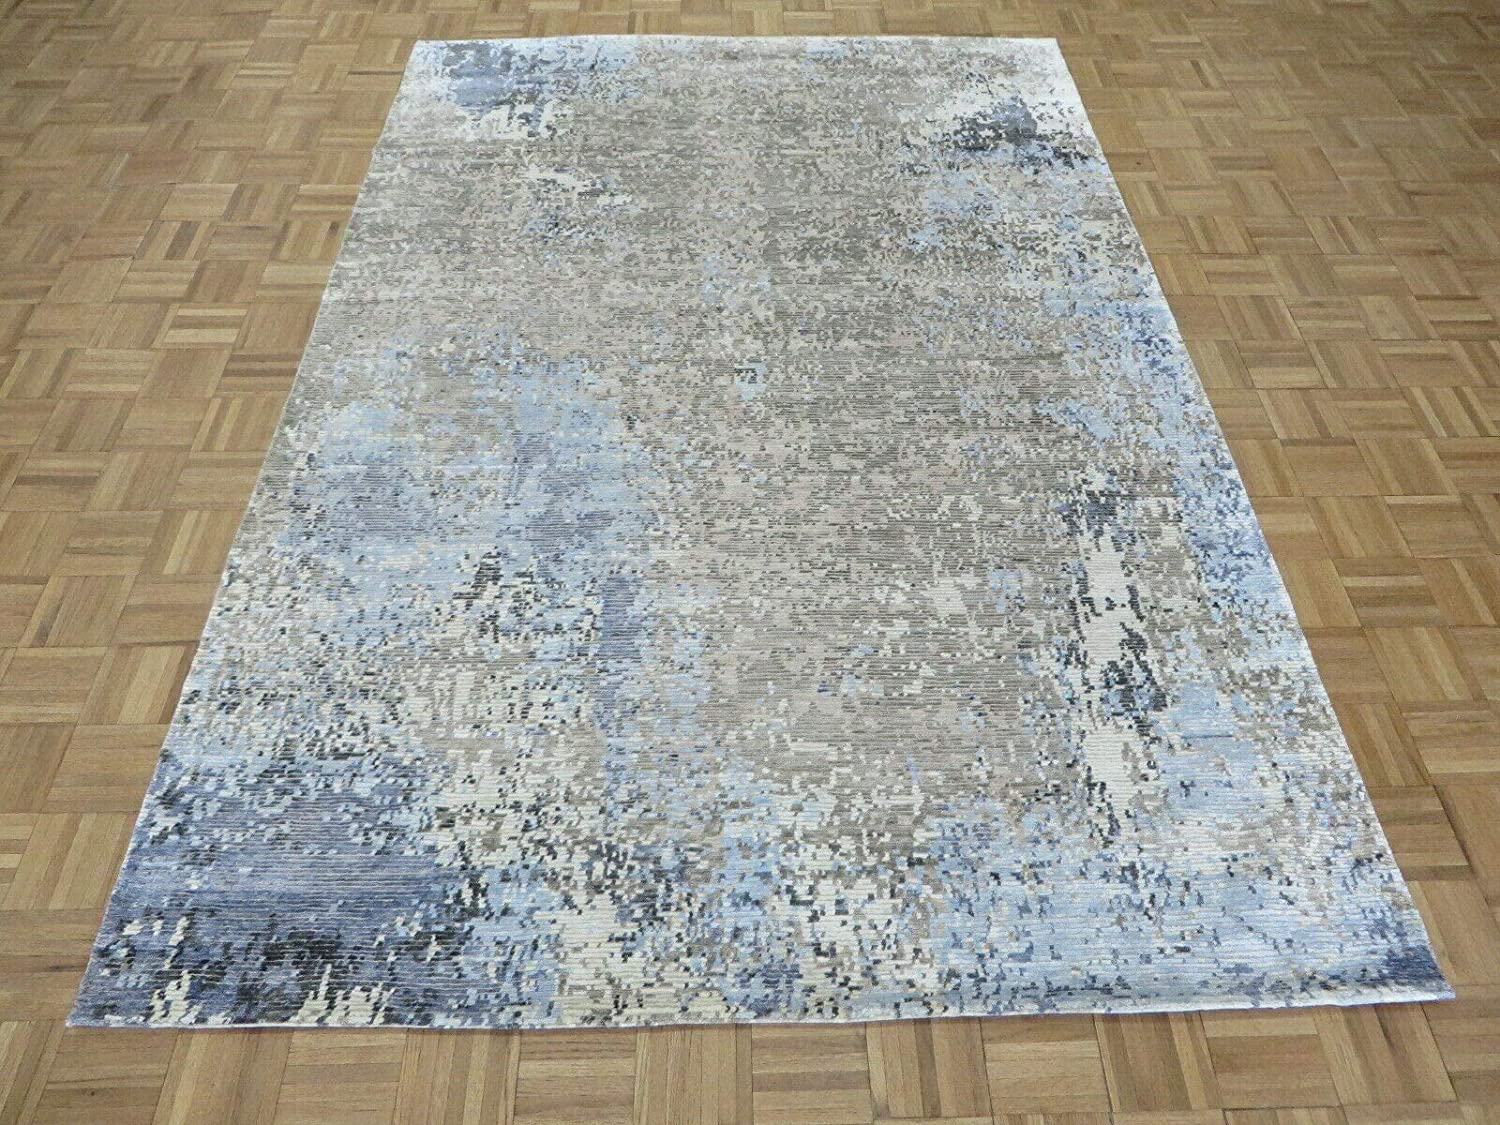 6'1 X Boston Mall 9'2 Hand Knotted Gray Modern Wi 40% OFF Cheap Sale Rug Blue Abstract Oriental